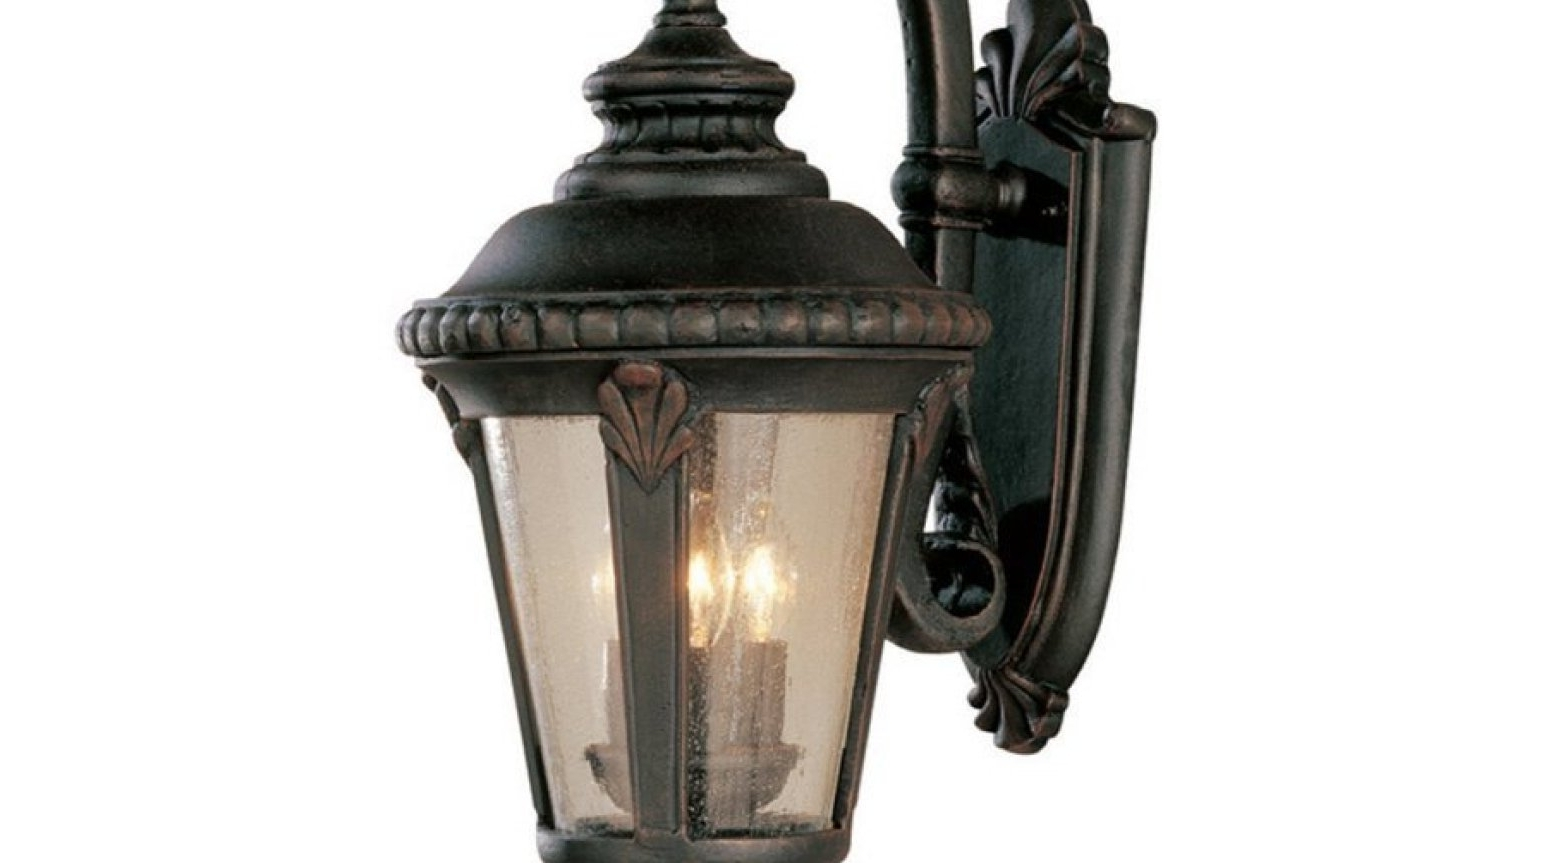 Most Current Quality Outdoor Wall Lighting For Light : Canada Production Simple Elegance Lamp Shinings In Darkness (View 7 of 20)